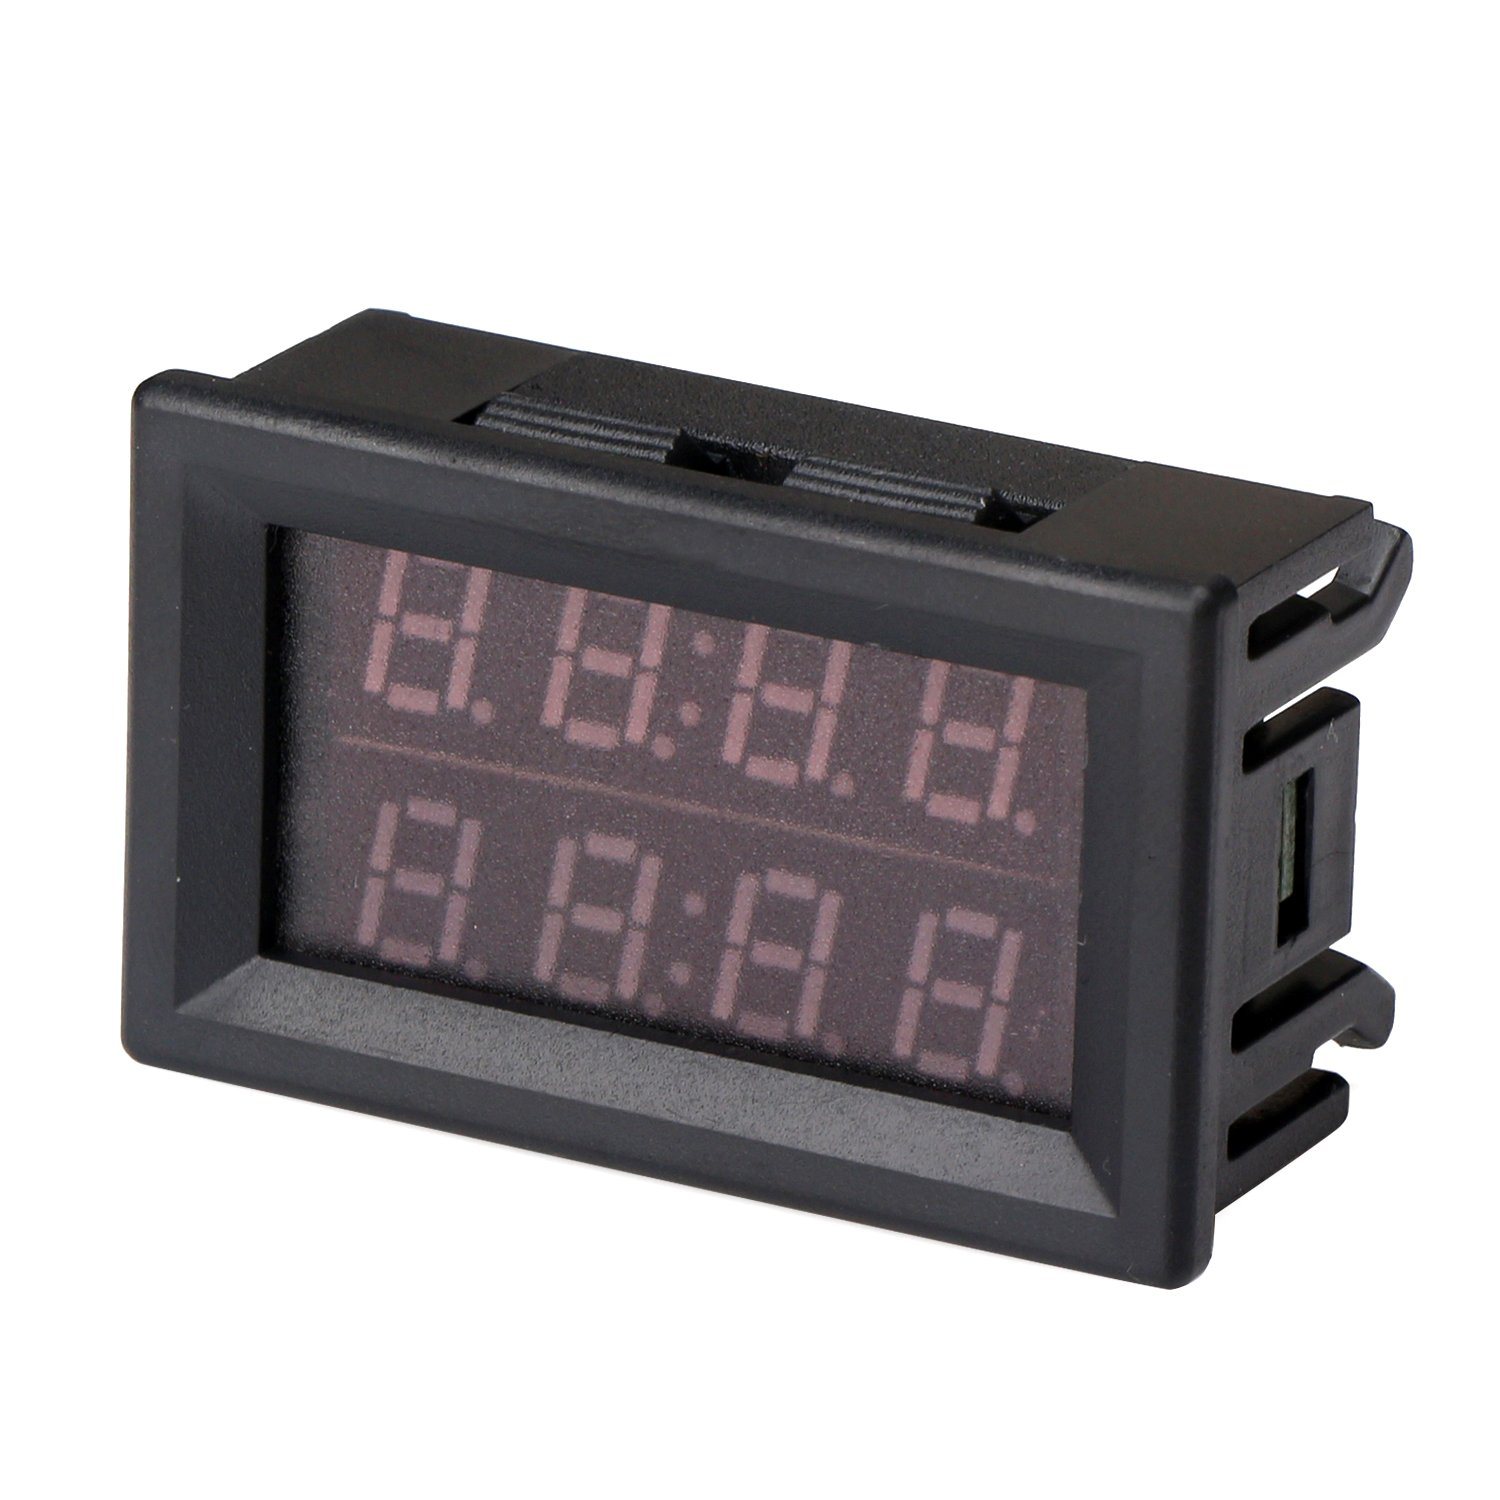 DROK LED Dual Display Voltmeter Ammeter DC 0-100V 100A Voltage ...